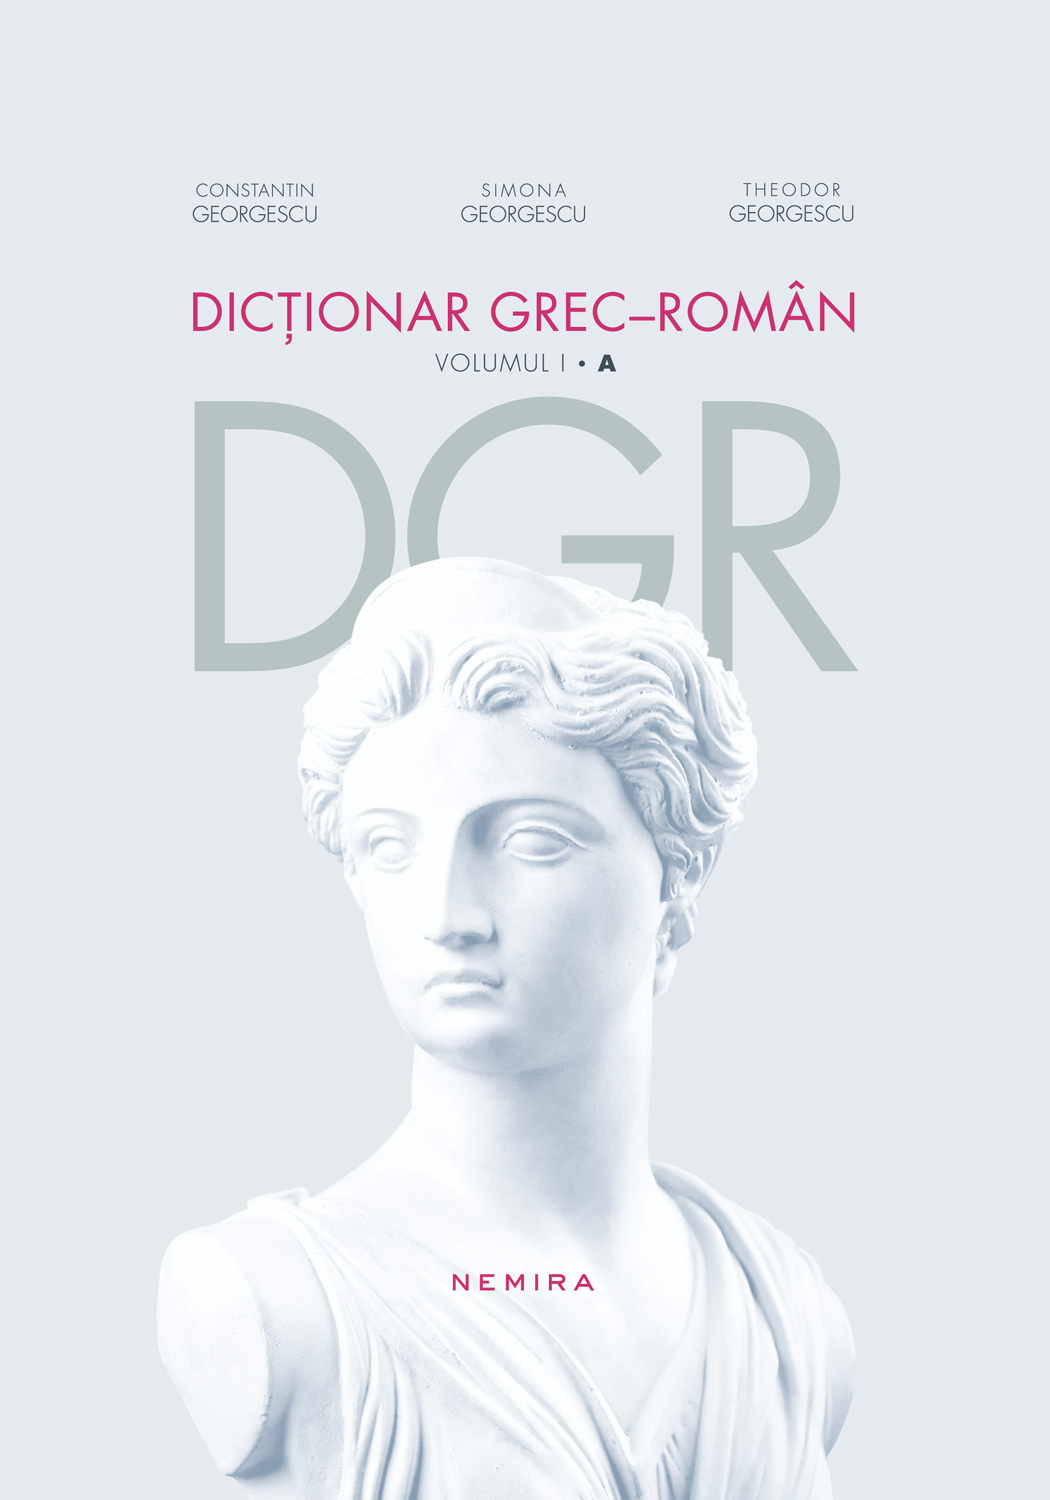 Dictionar Grec-roman. Volumul I A